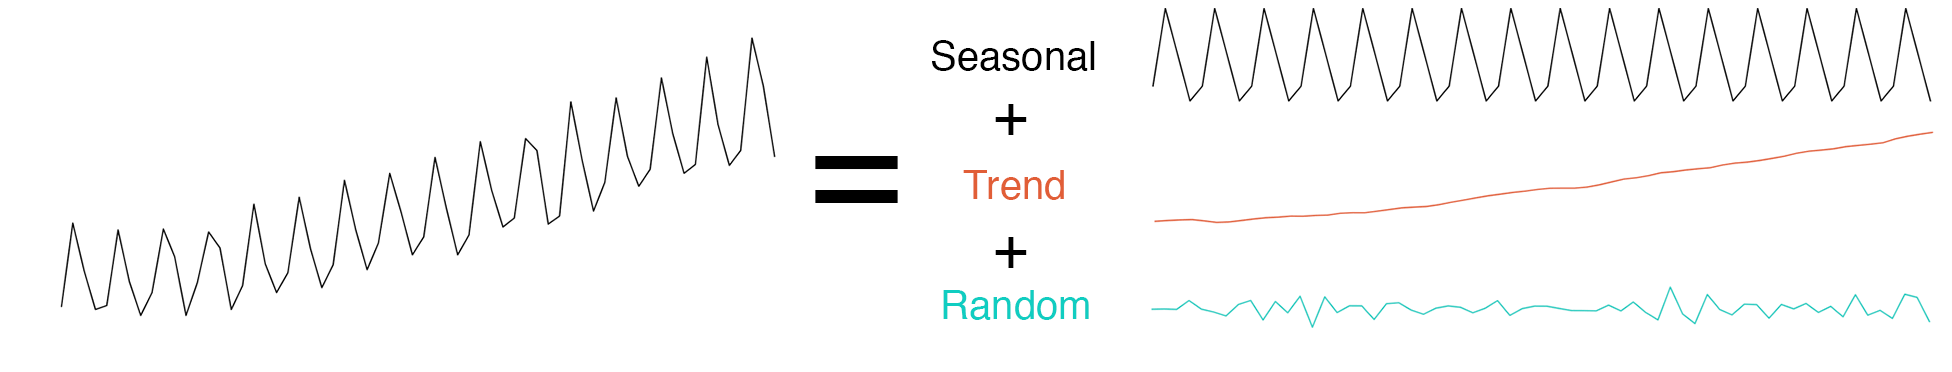 time-series-decomposition-seasonal-trend